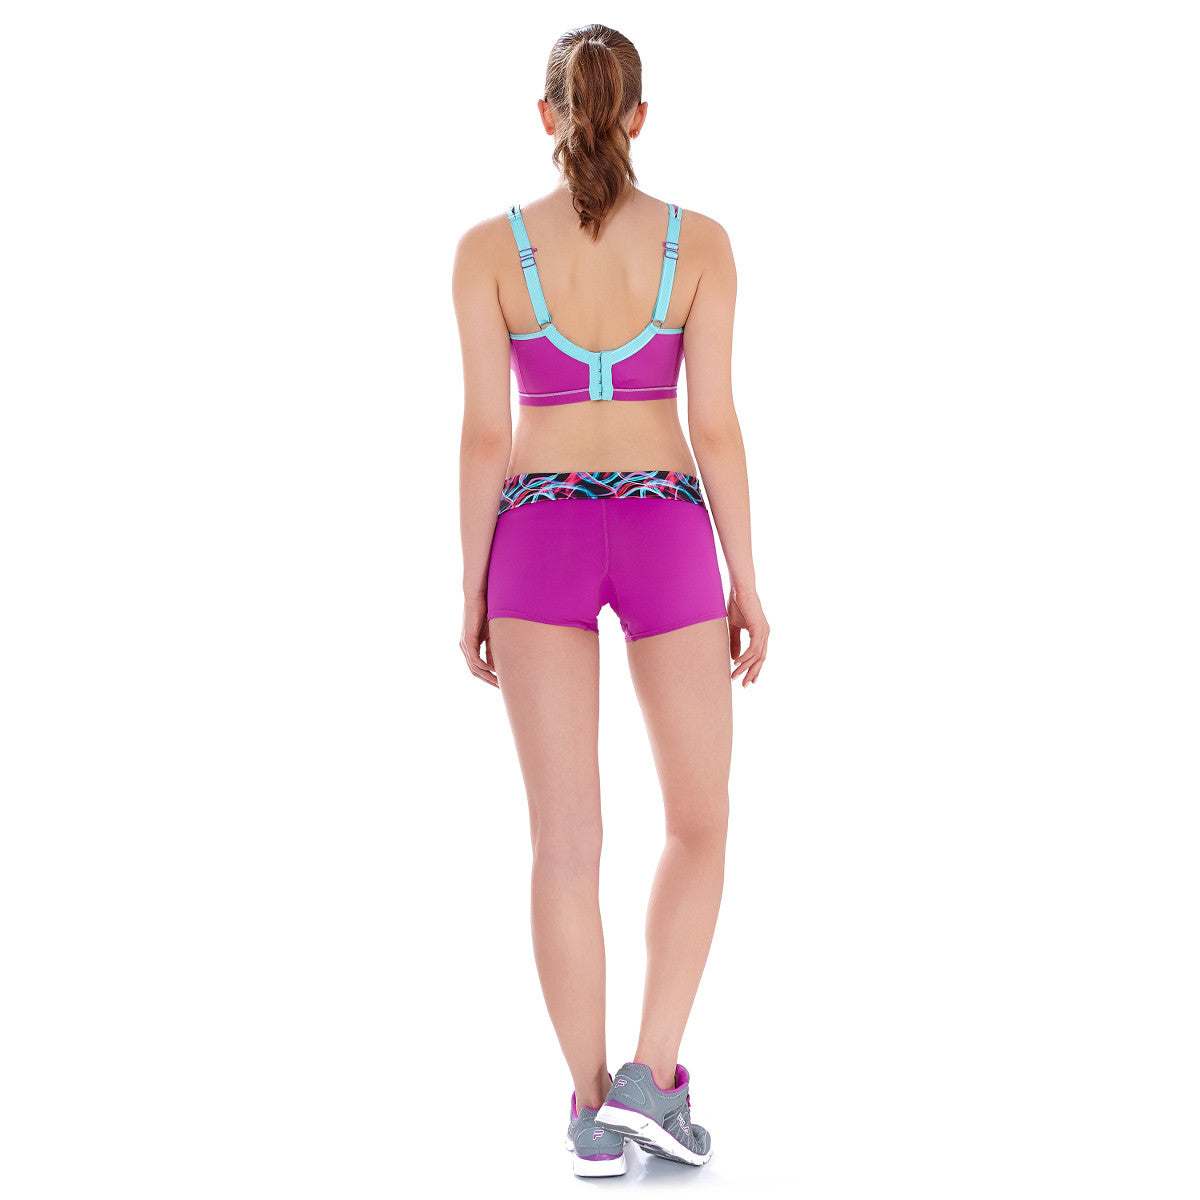 4861d909d7e69 Freya-Active-Ultra-Violet-Moulded-Underwired-Crop-Top-